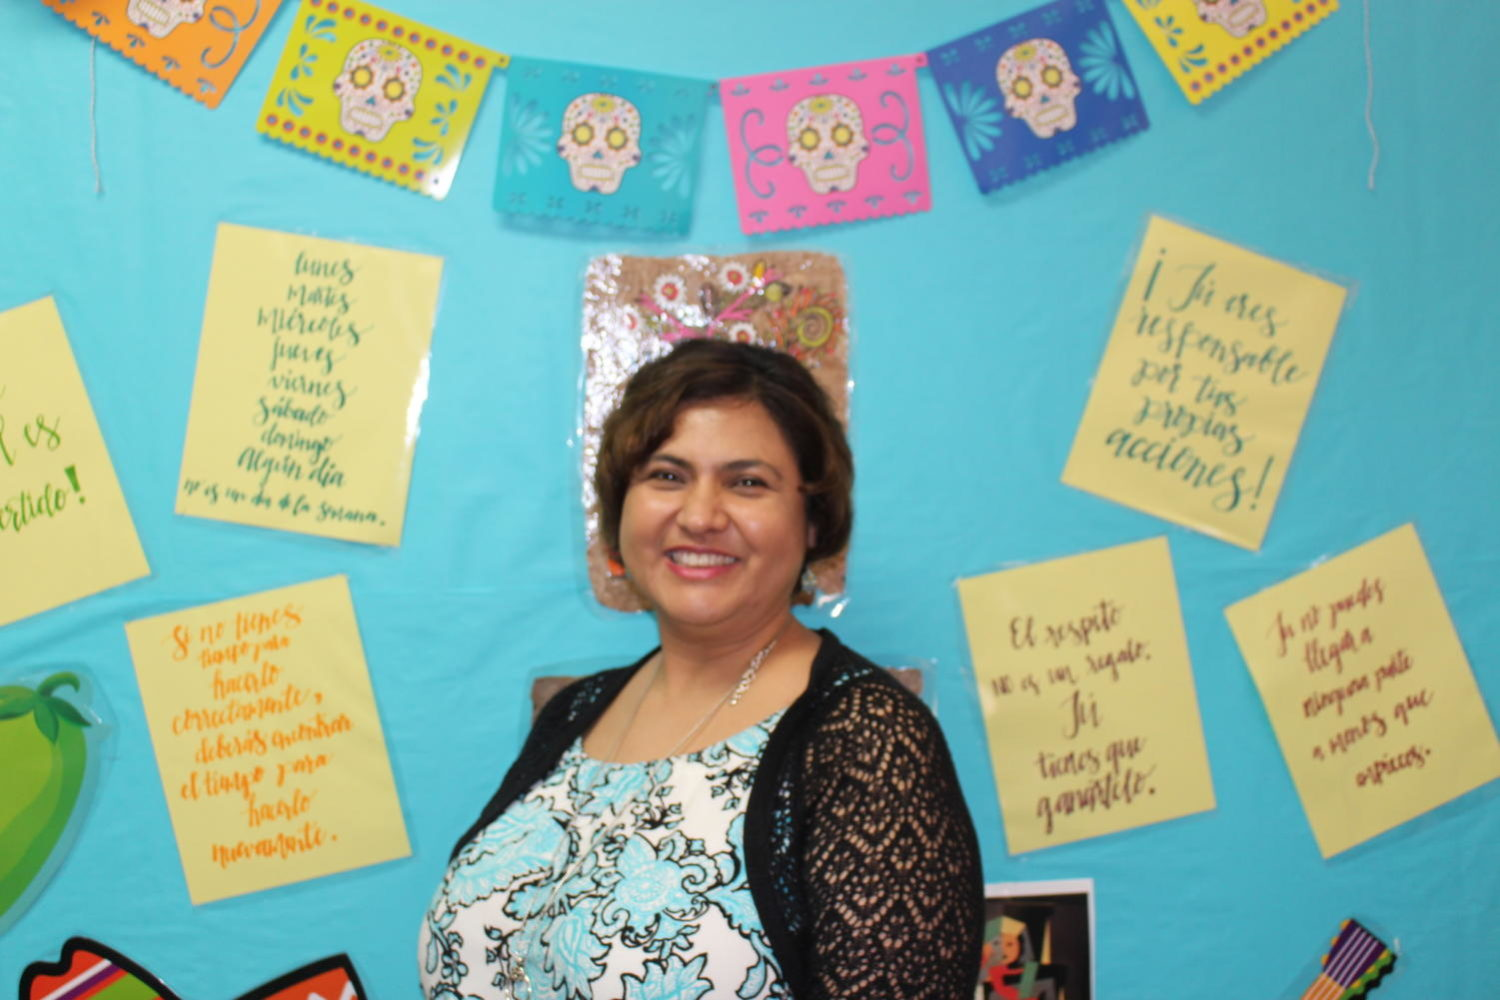 Coppell High School Spanish teacher Linda Grady came to CHS from Trinity High School in Euless. She has enjoyed getting to know the faculty while teaching academically driven students.